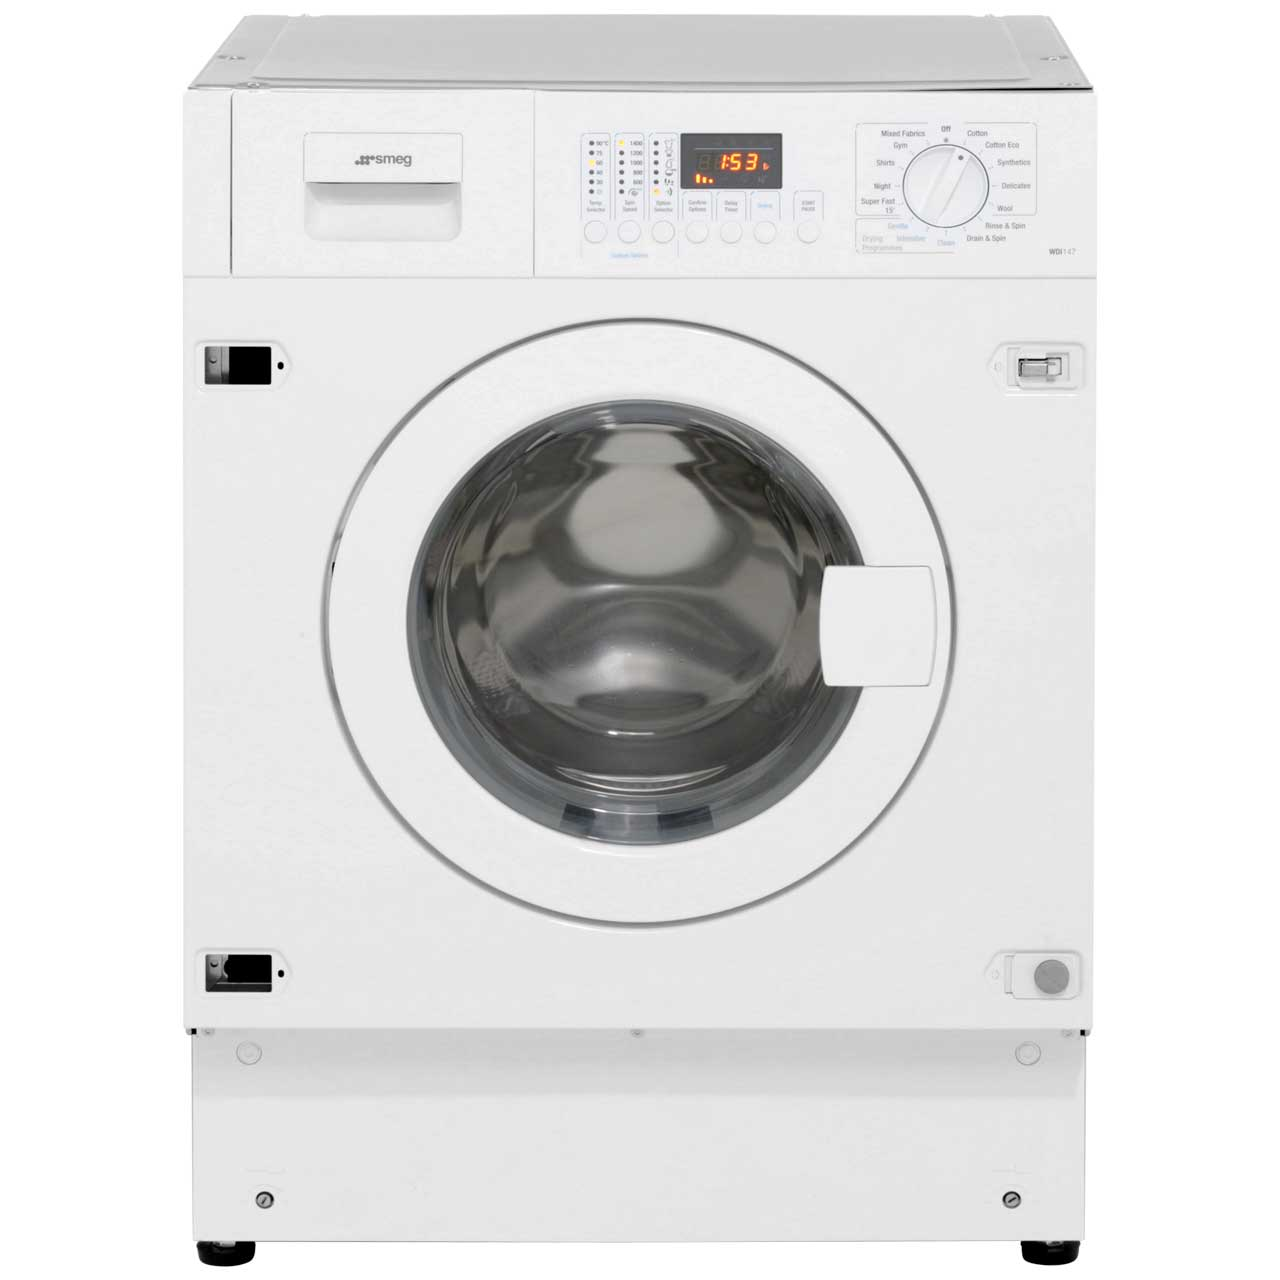 Smeg WDI147 Integrated 7Kg / 4Kg Washer Dryer with 1400 rpm